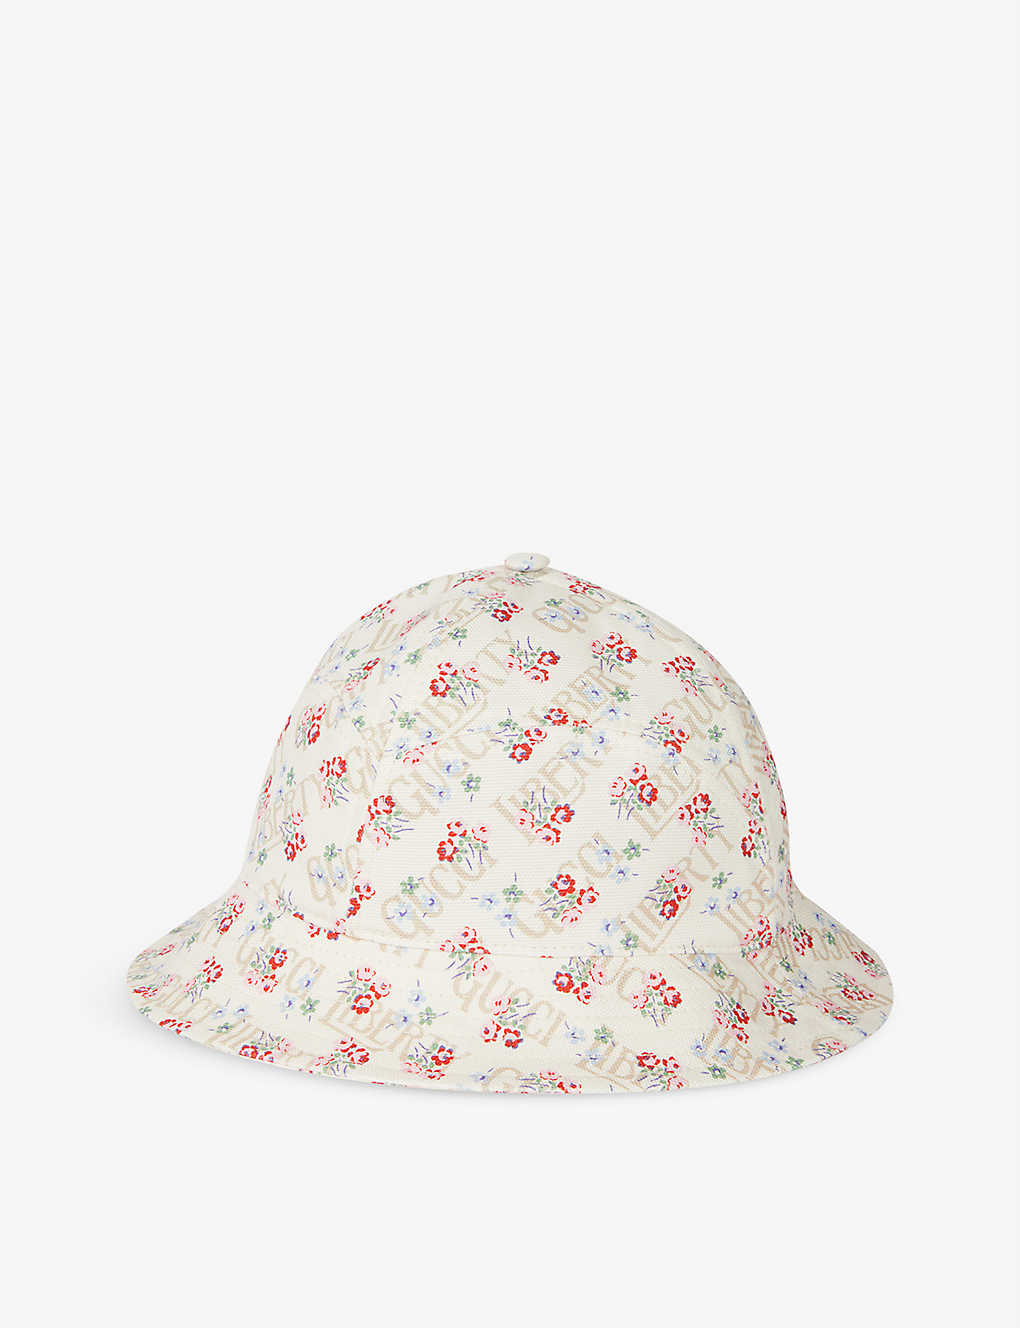 GUCCI: Gucci x Liberty Rose floral-print cotton bucket hat